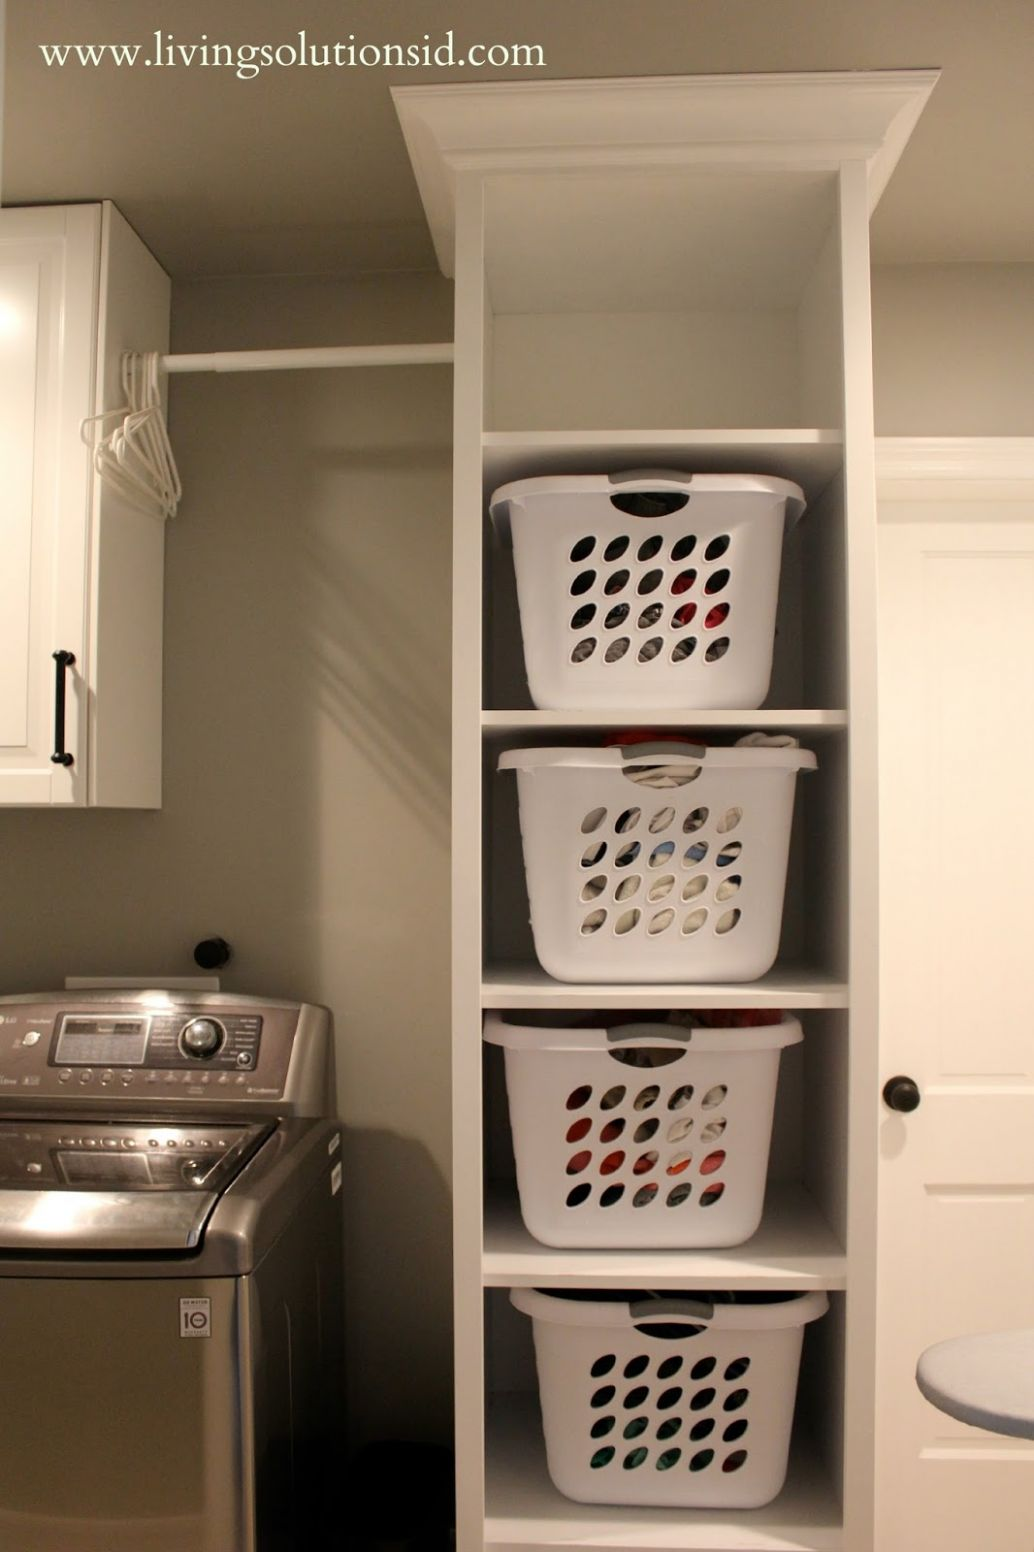 The Laundry Room Today, Laundry Room Storage And Hamper ..